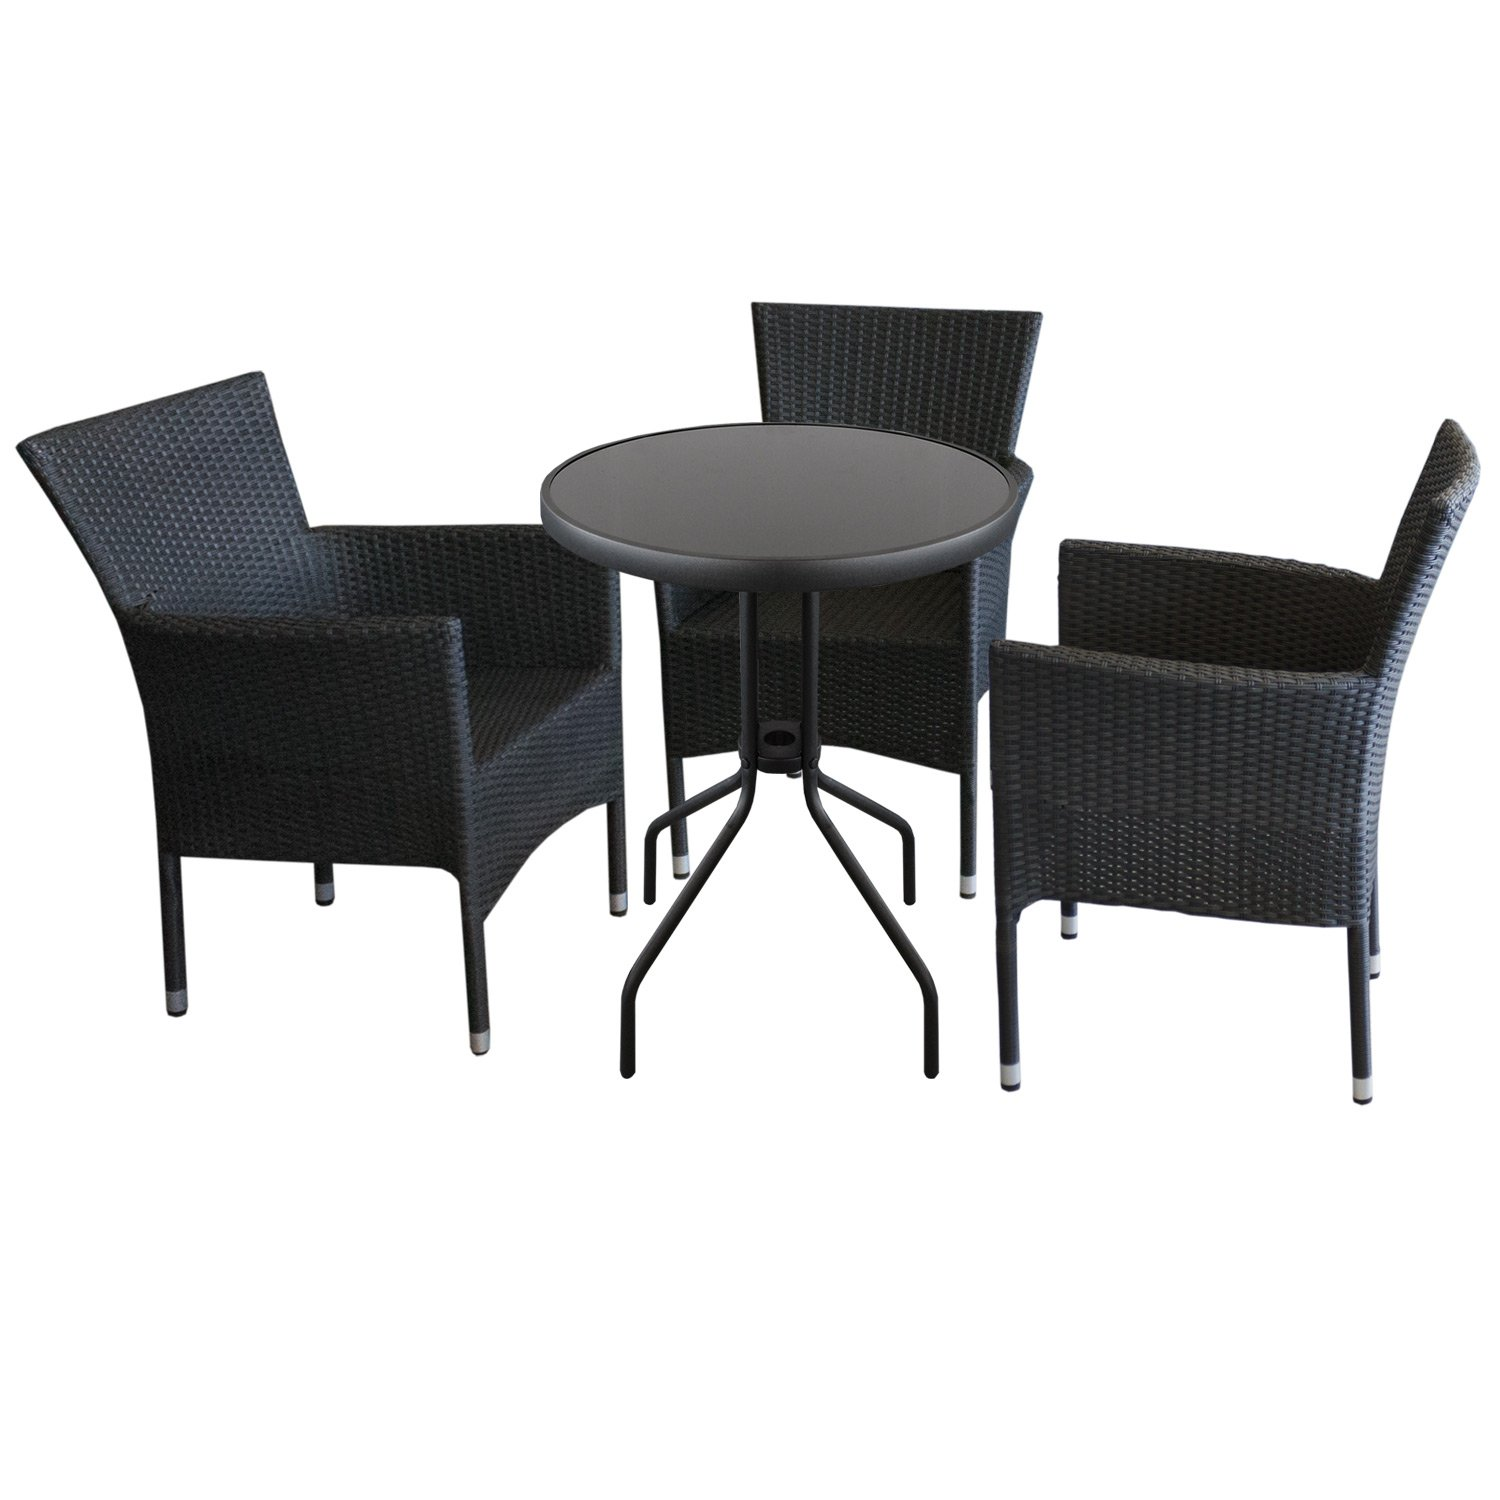 4tlg gartengarnitur balkontisch bistrotisch metall glas 60x71cm 3x stapelbare polyrattan. Black Bedroom Furniture Sets. Home Design Ideas